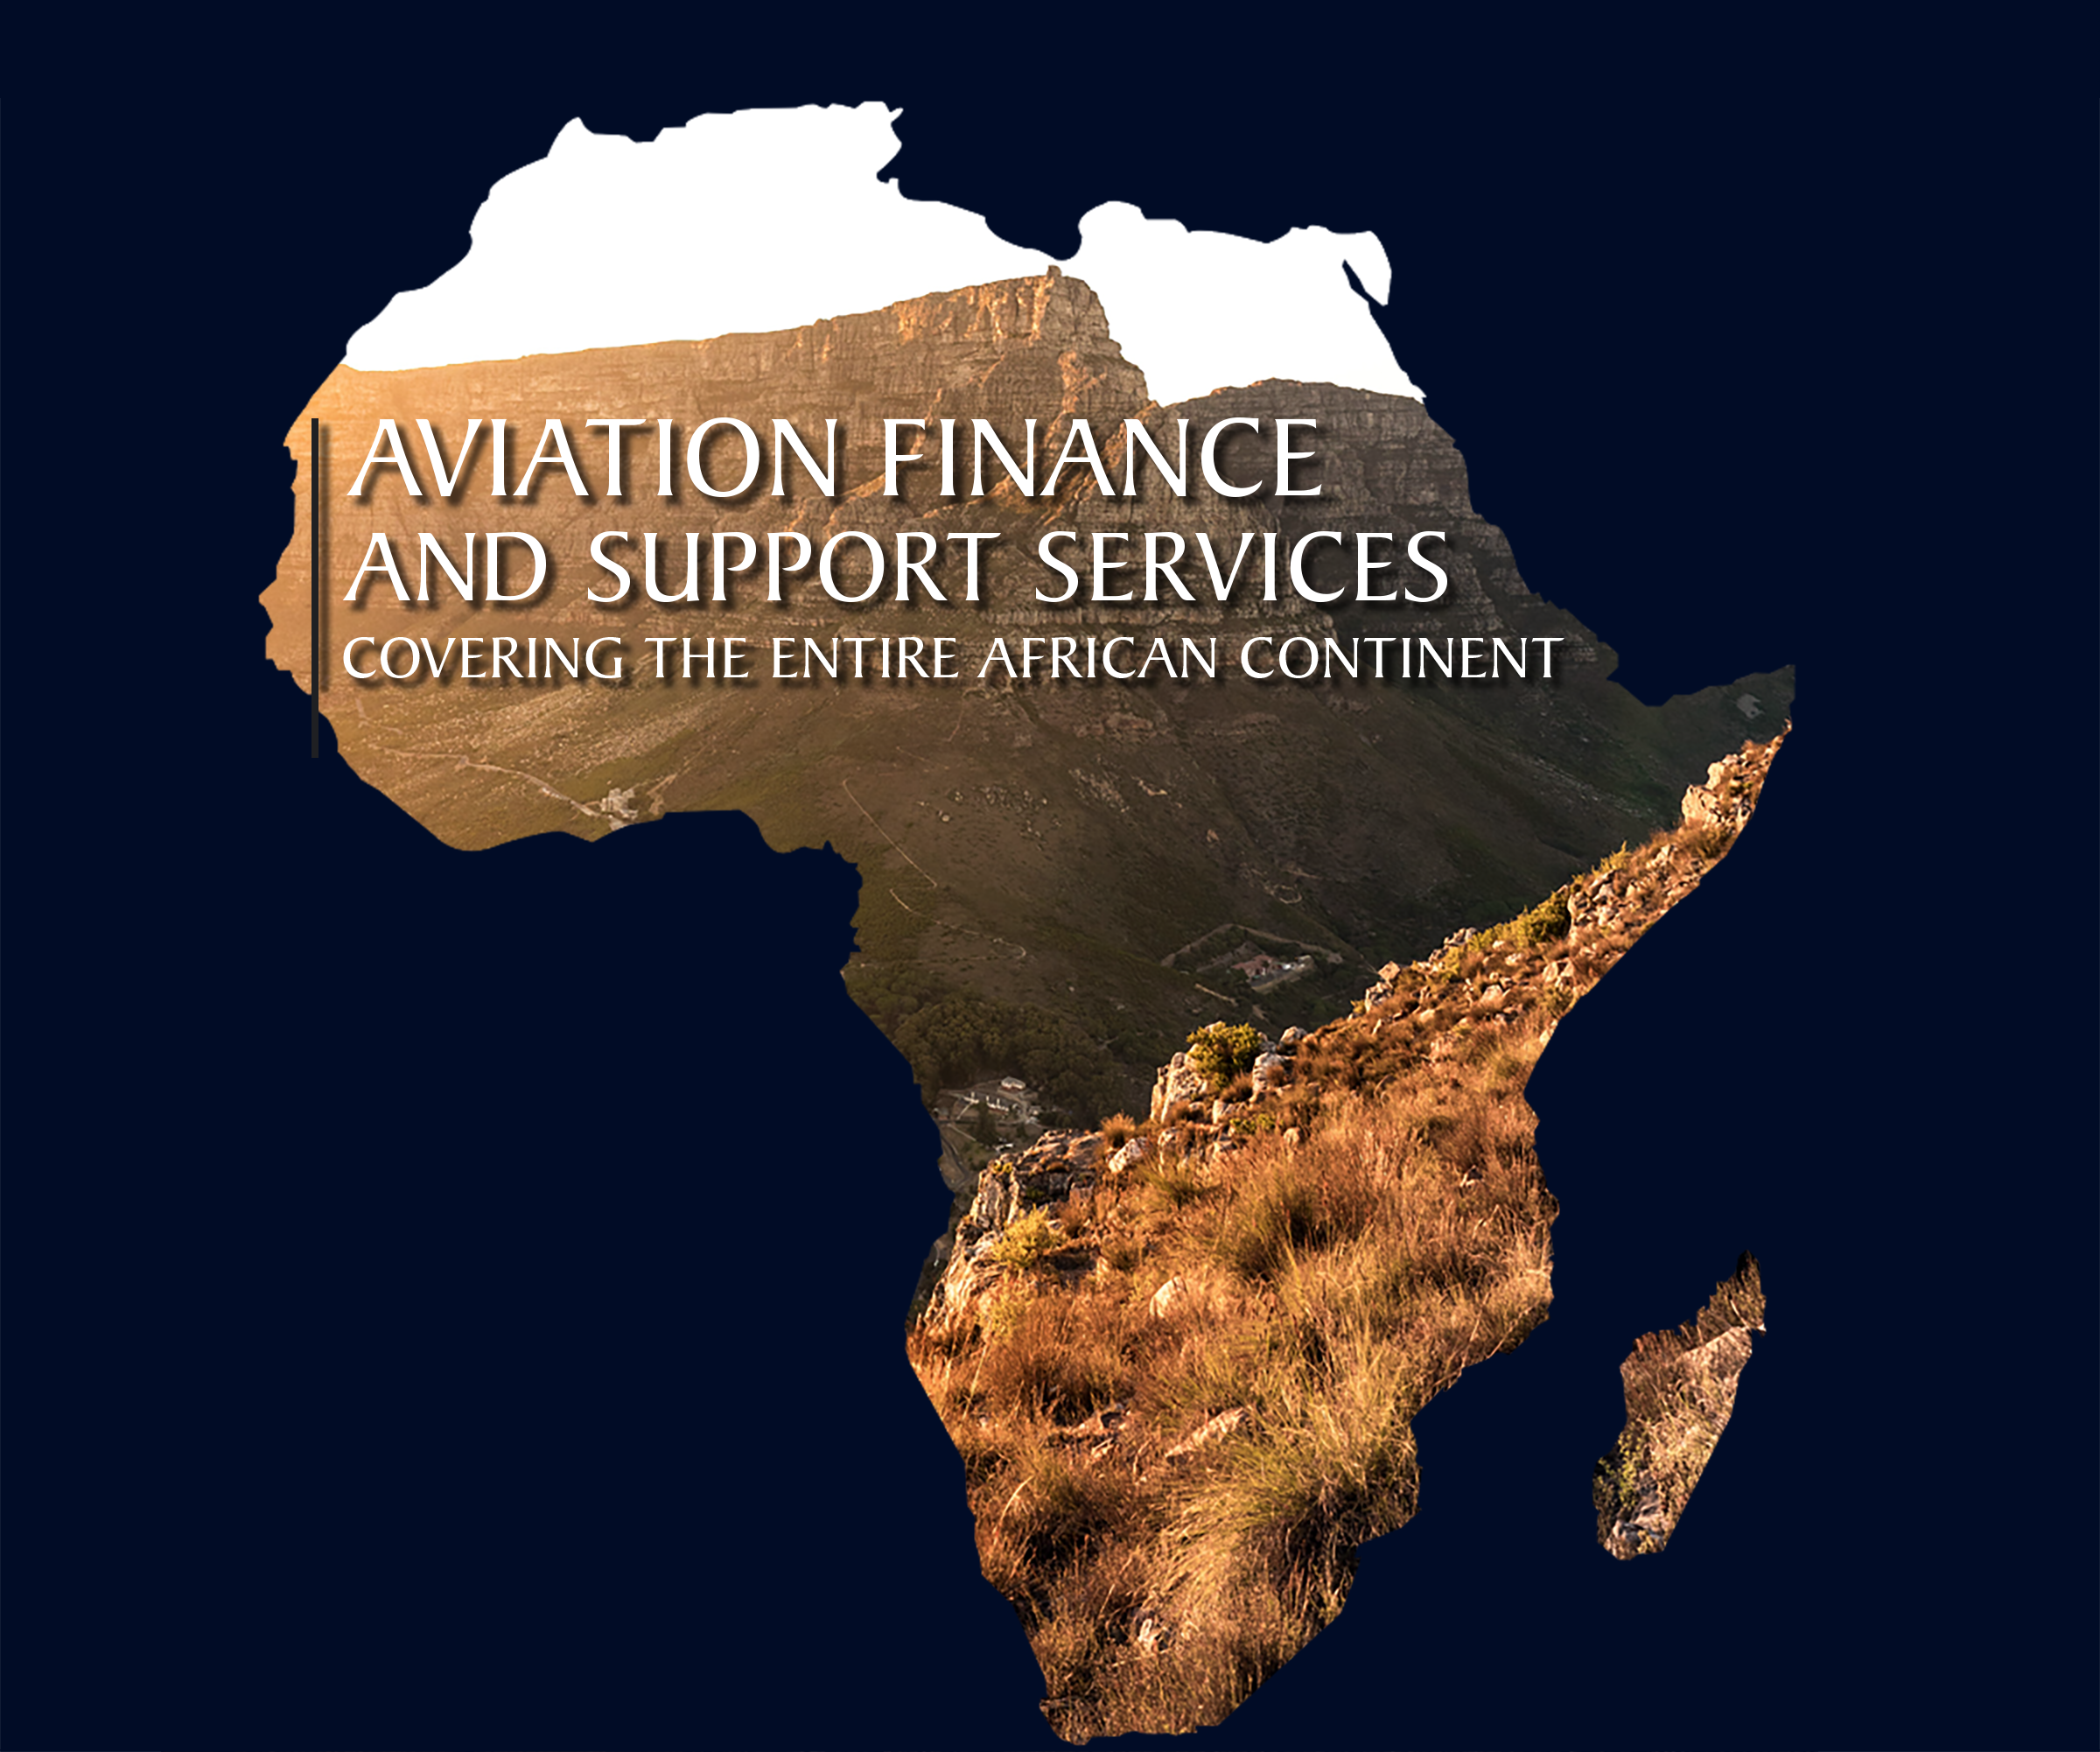 Aircraft Finance Corporation